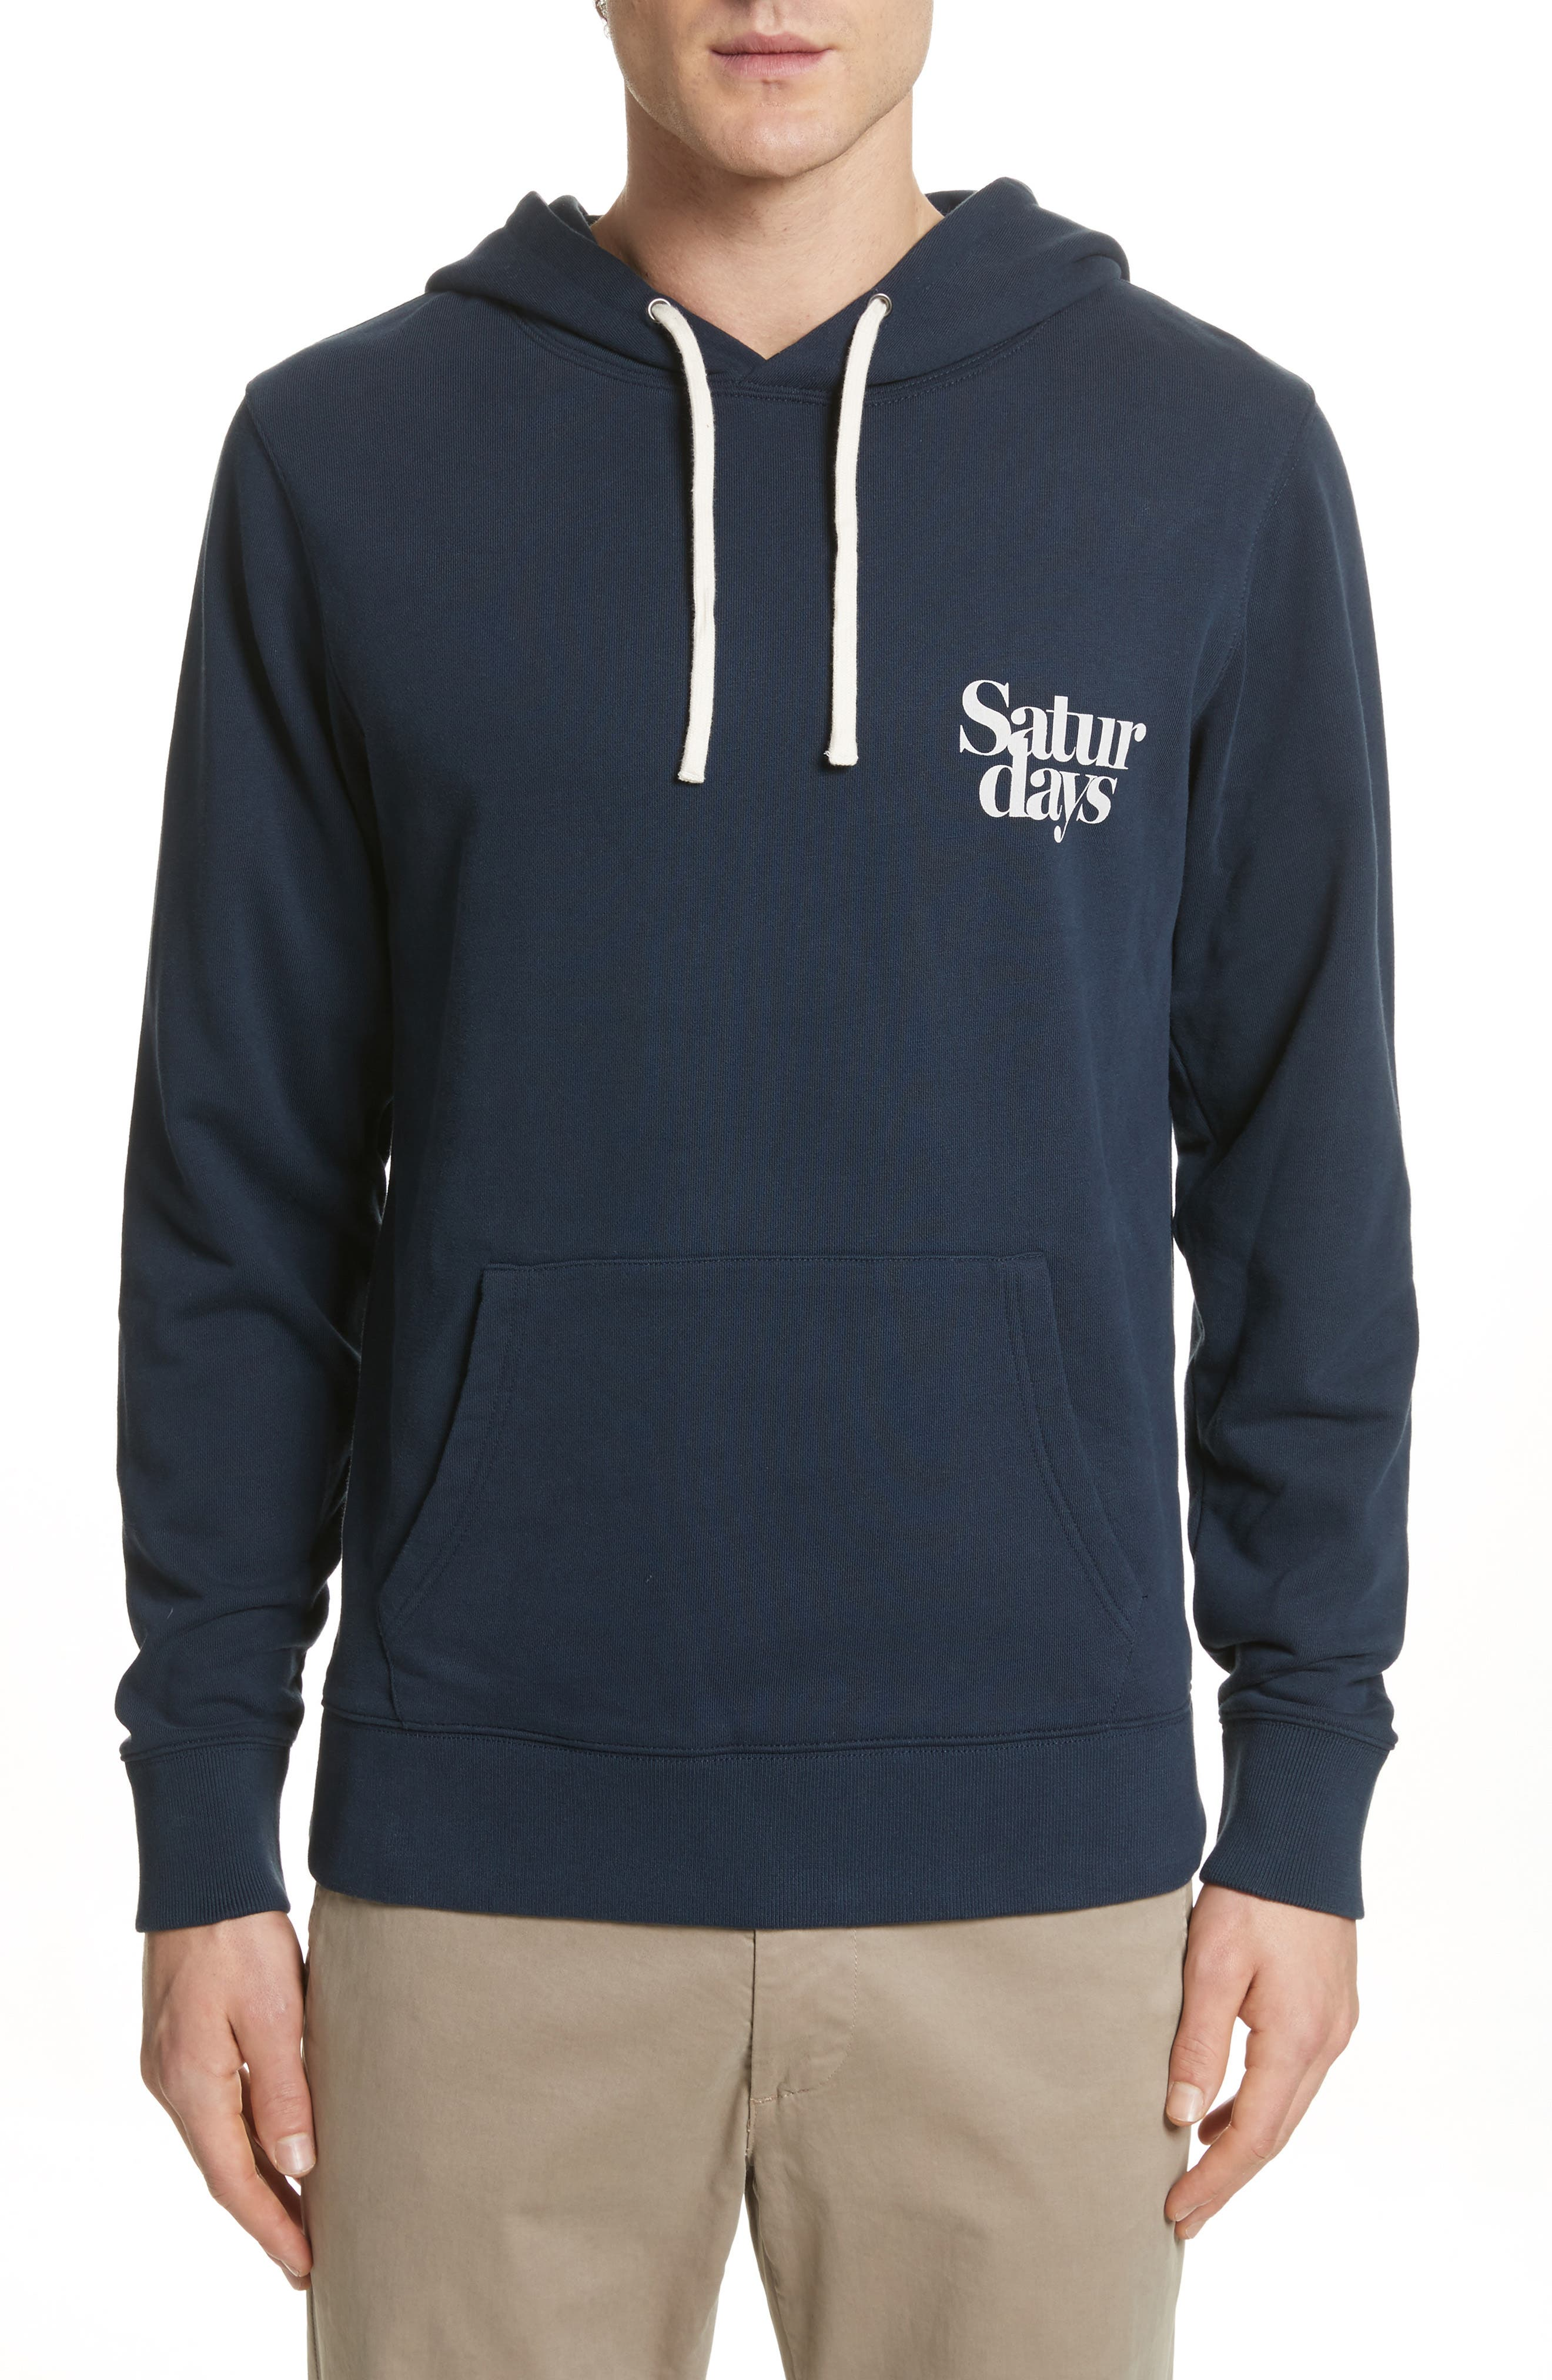 Ditch Miller Hoodie,                         Main,                         color, Midnight